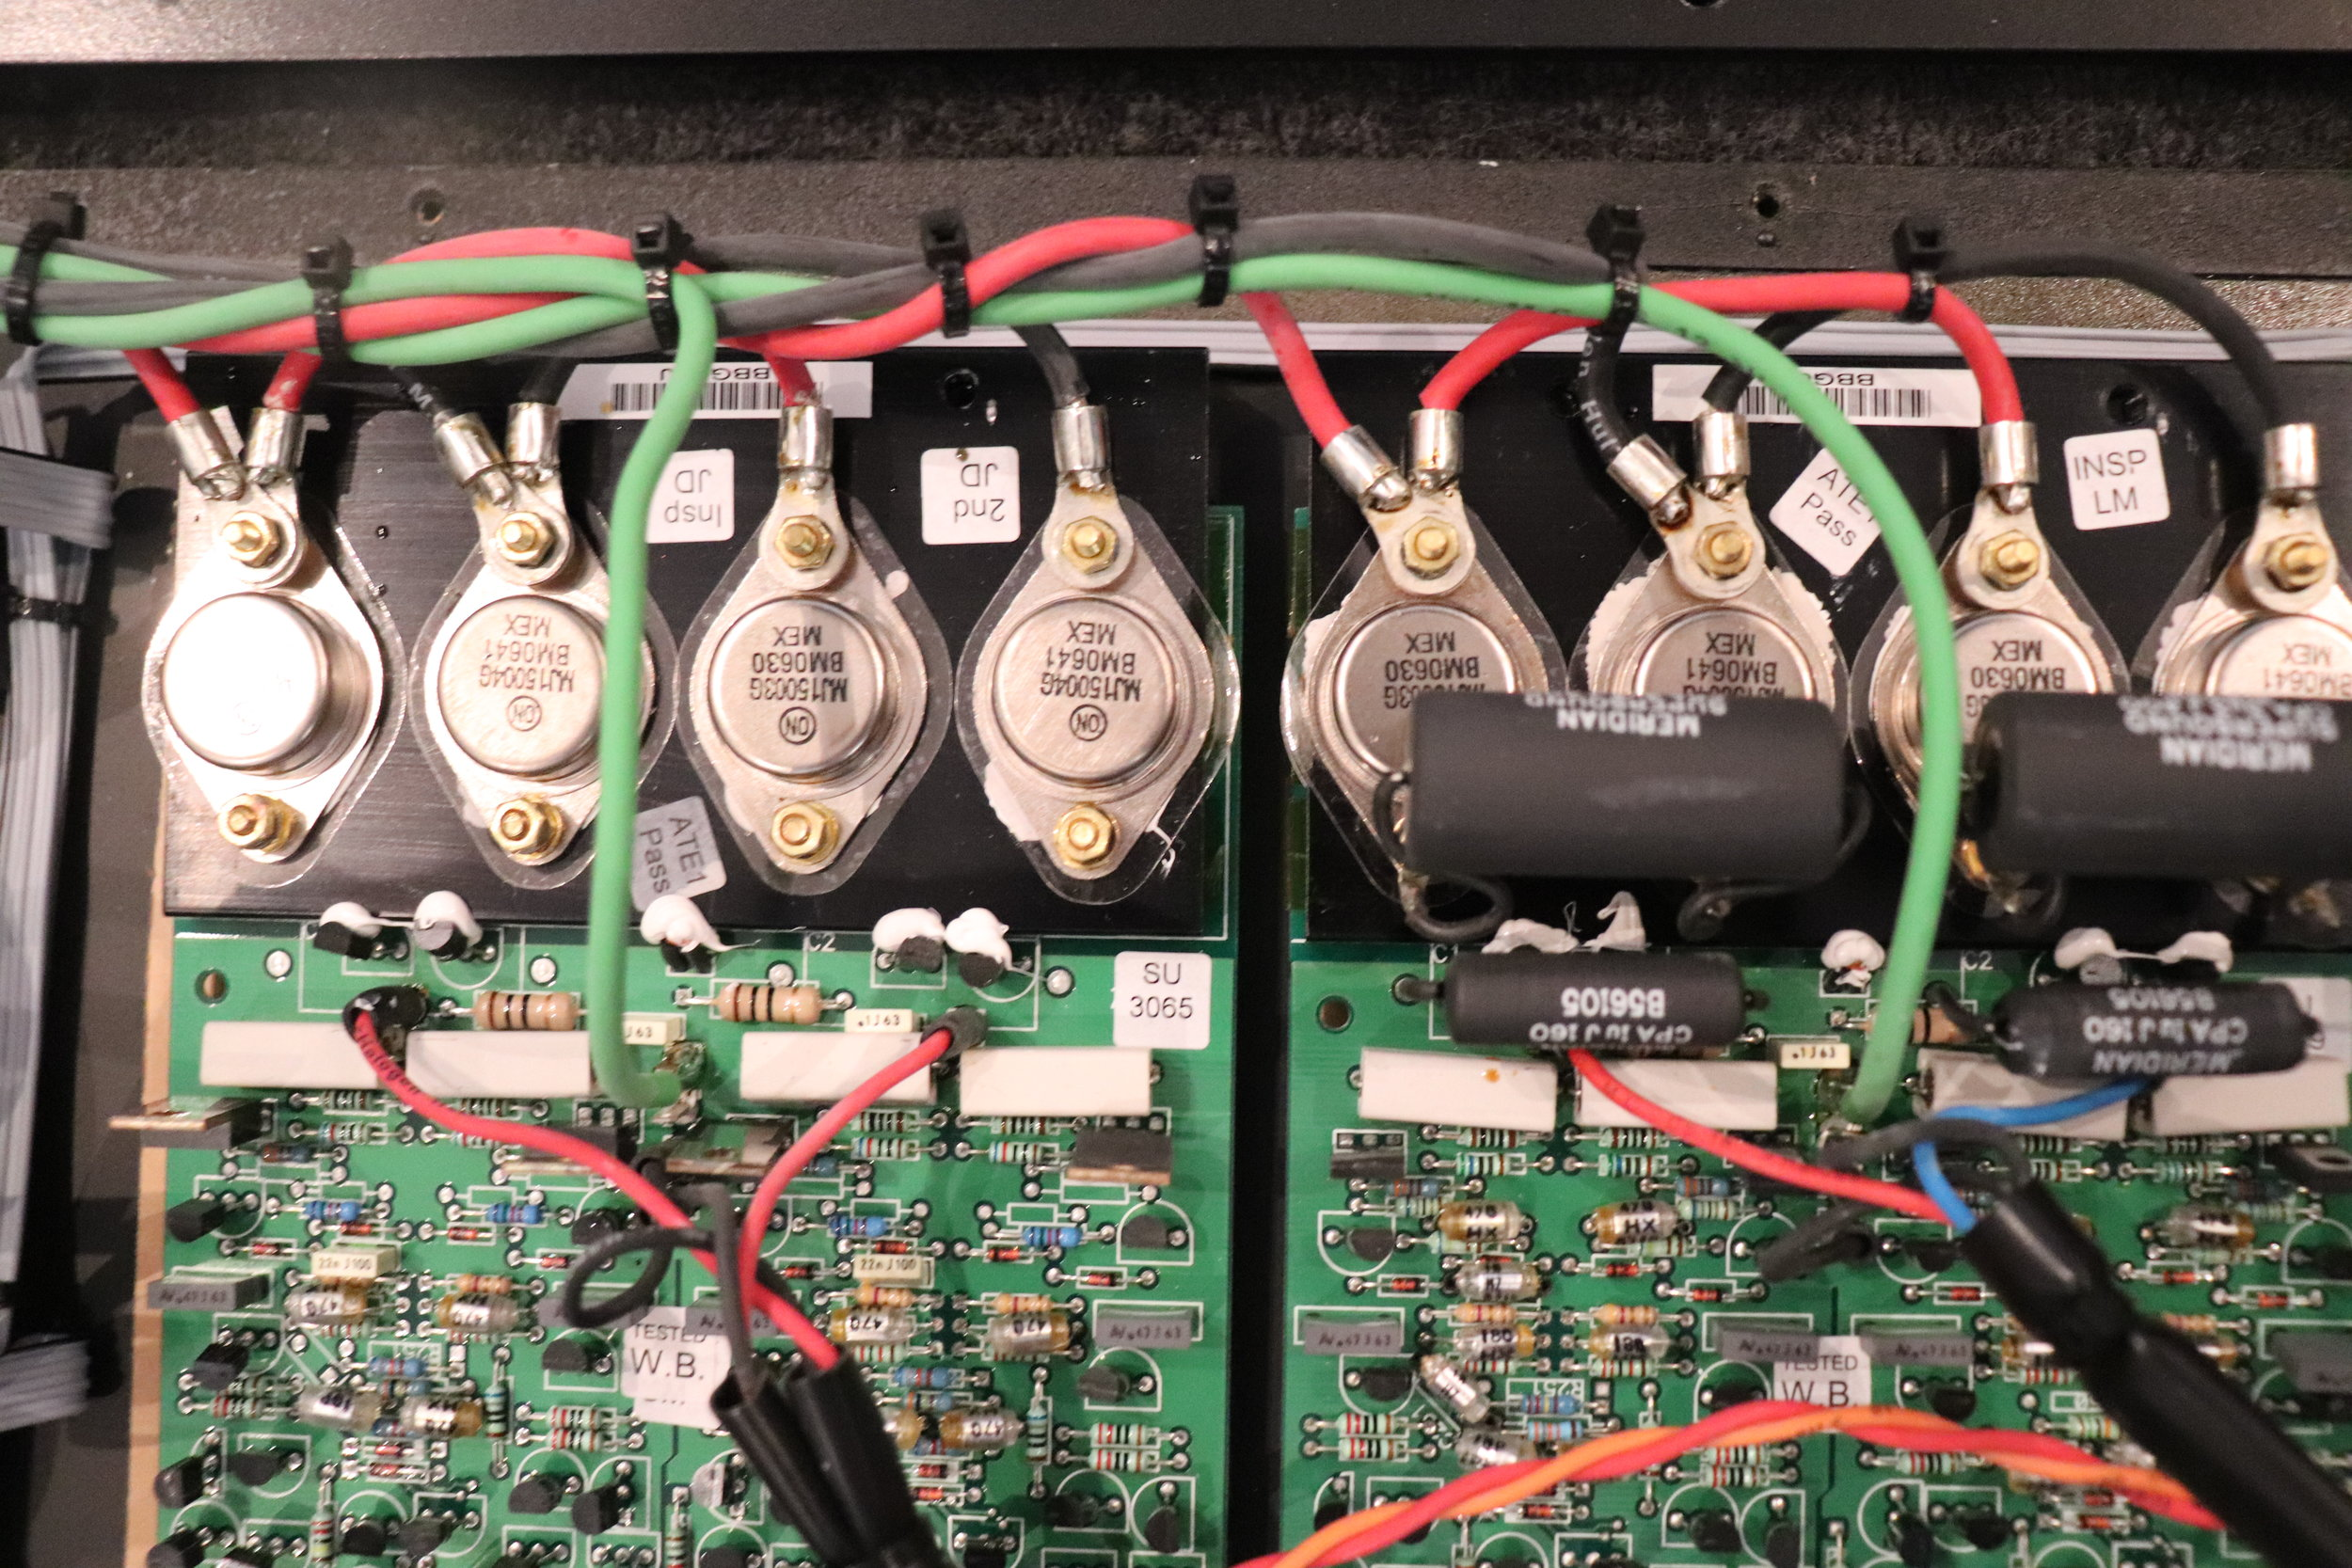 DSP5500HC: The Two Main Amplifier Boards (left bass)